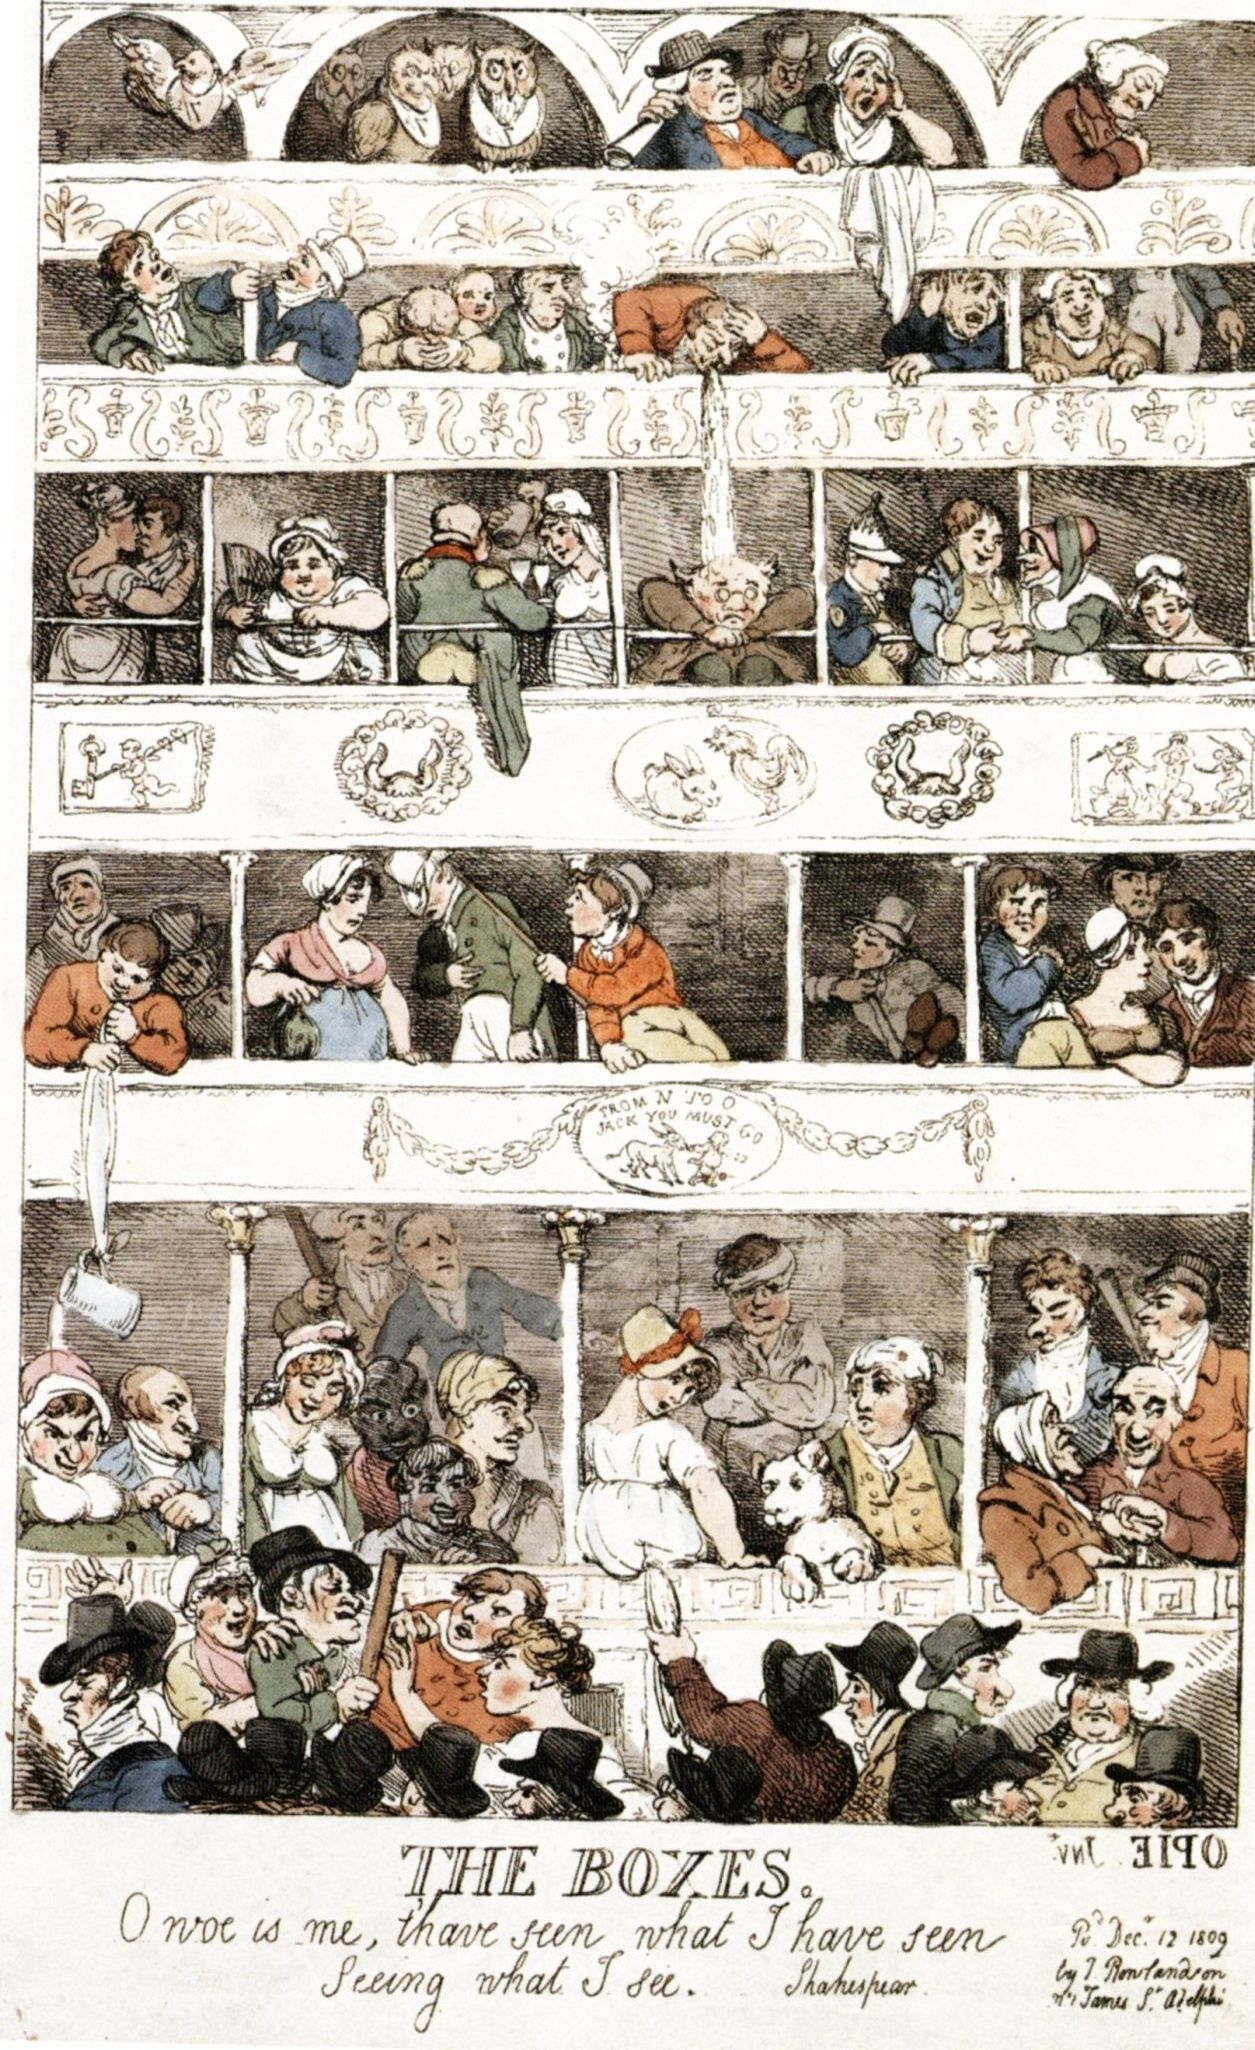 A Sort Blog Post About Lateeighteenth Century Satirical Painter Thomas  Rowlandson Pictured Here